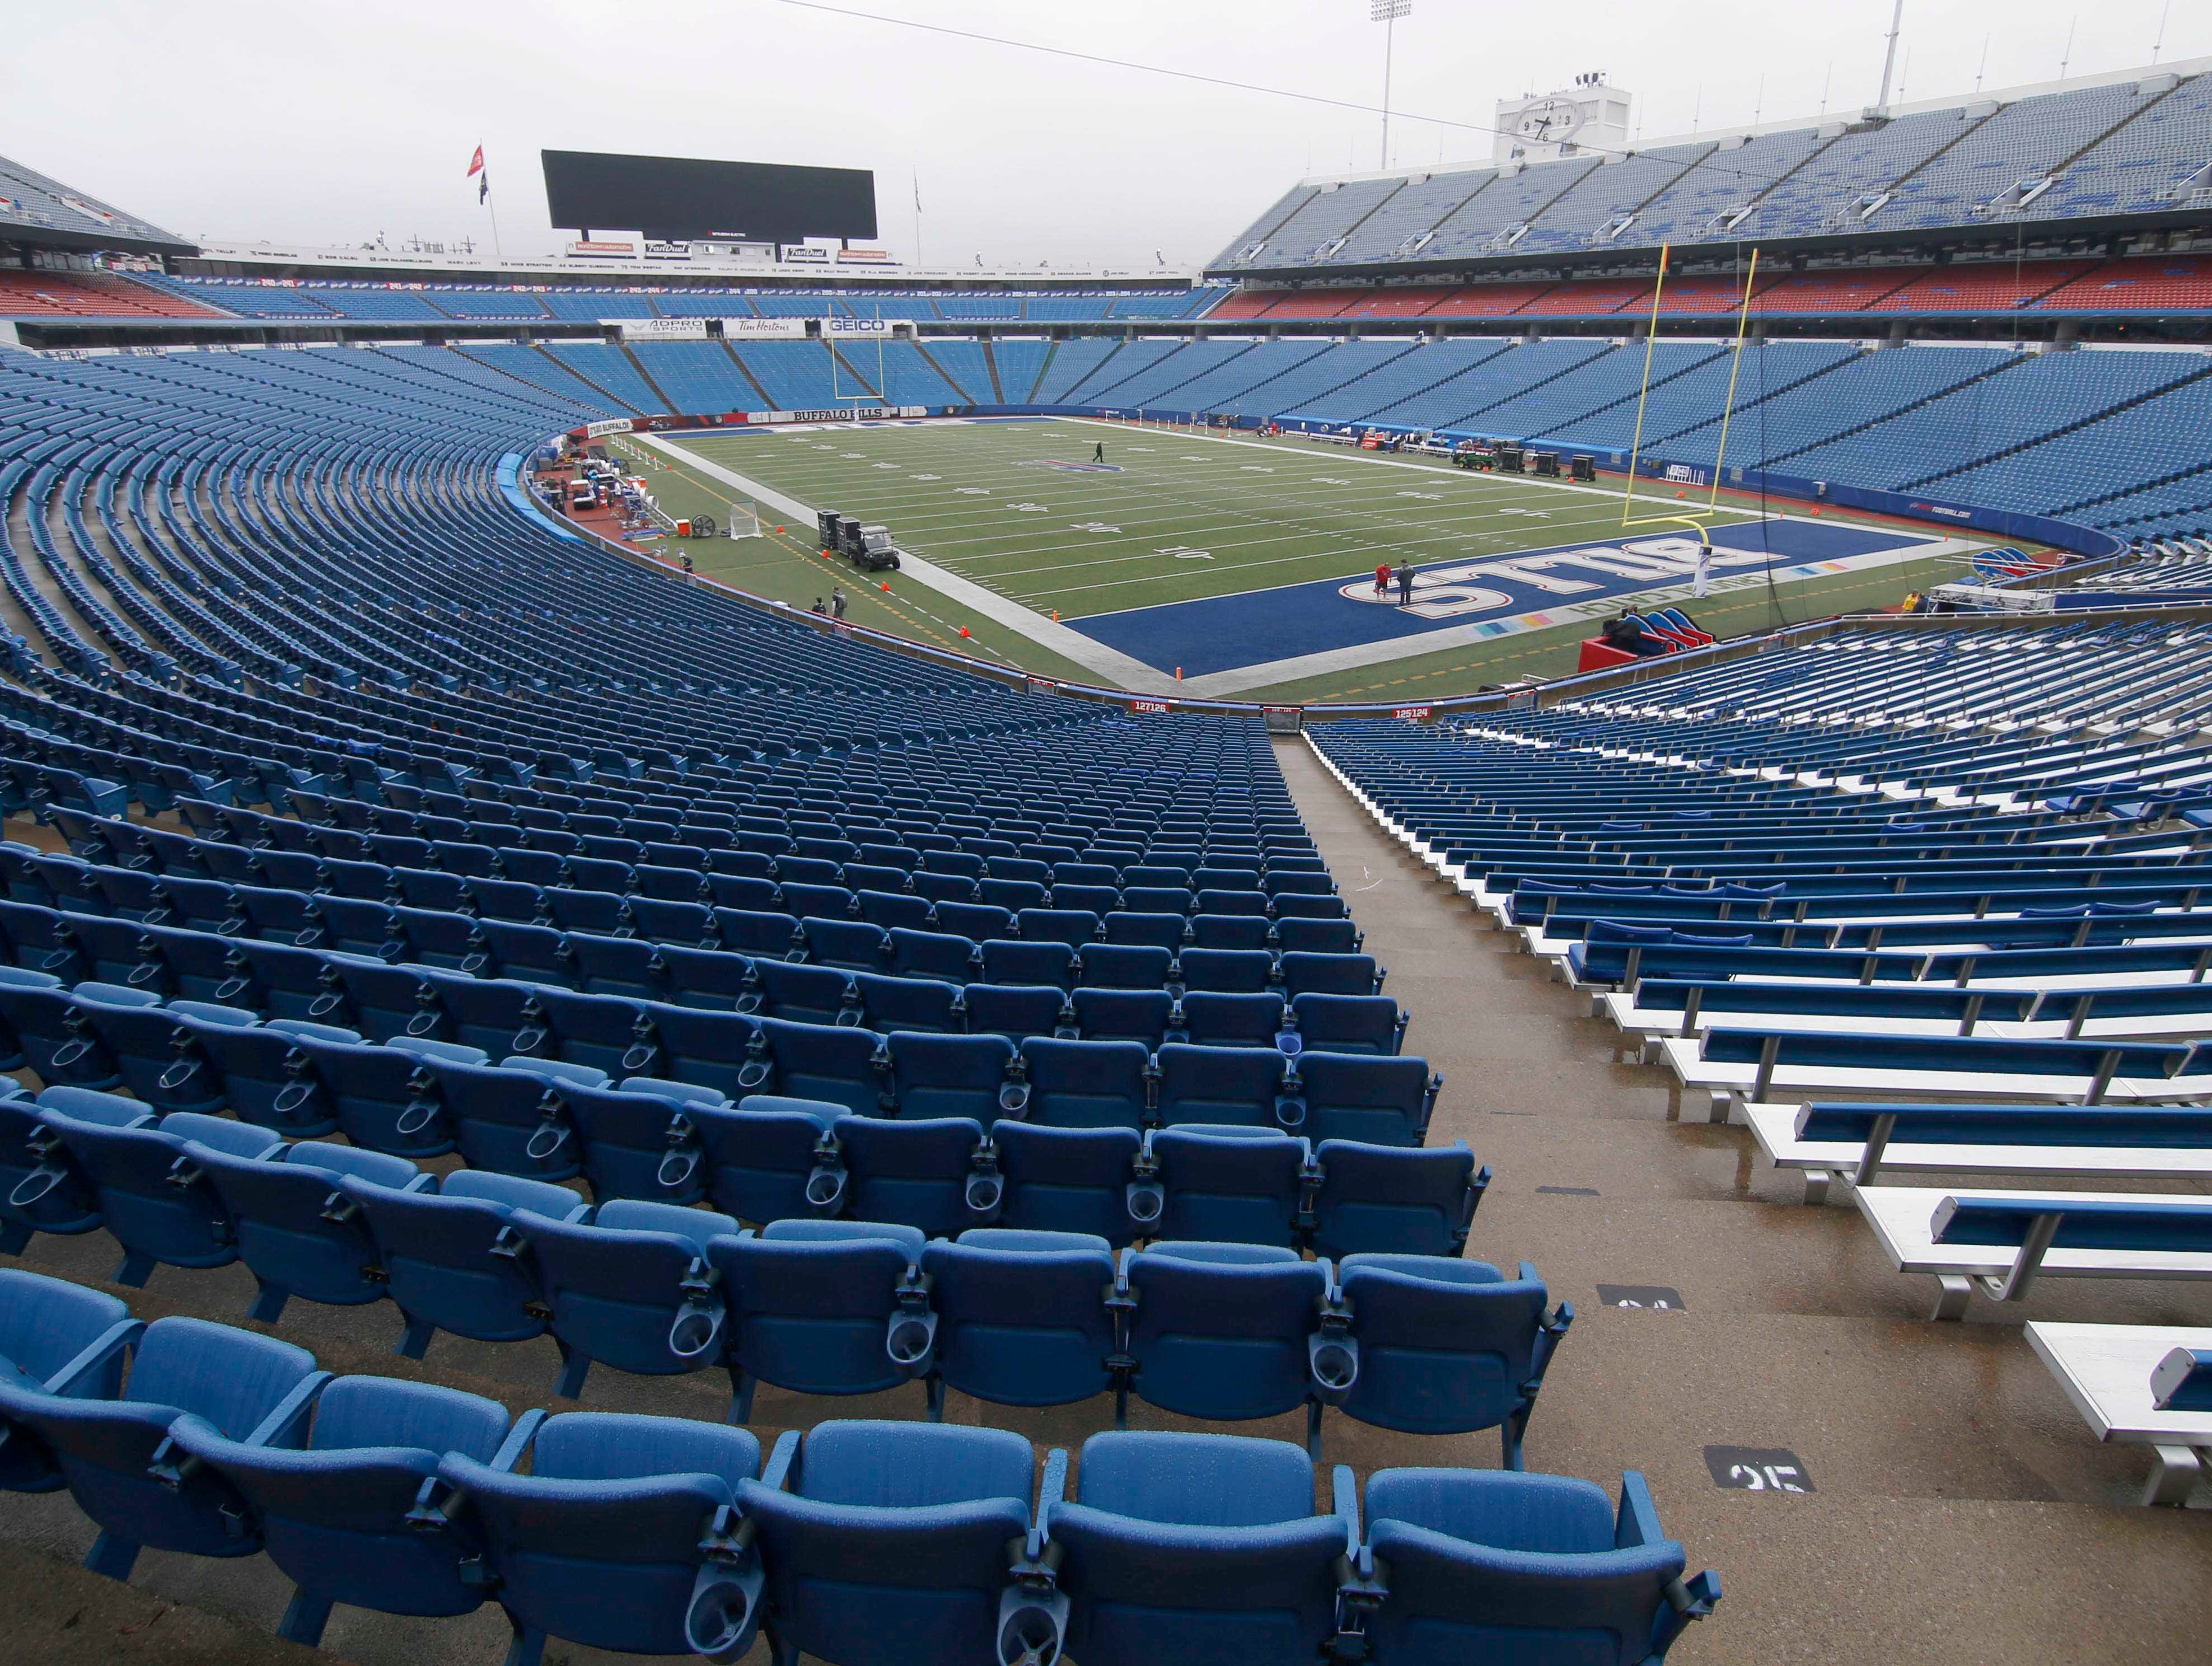 Oct 7, 2018; Orchard Park, NY, USA; A general of New Era Field before a game between the Buffalo Bills and the Tennessee Titans.